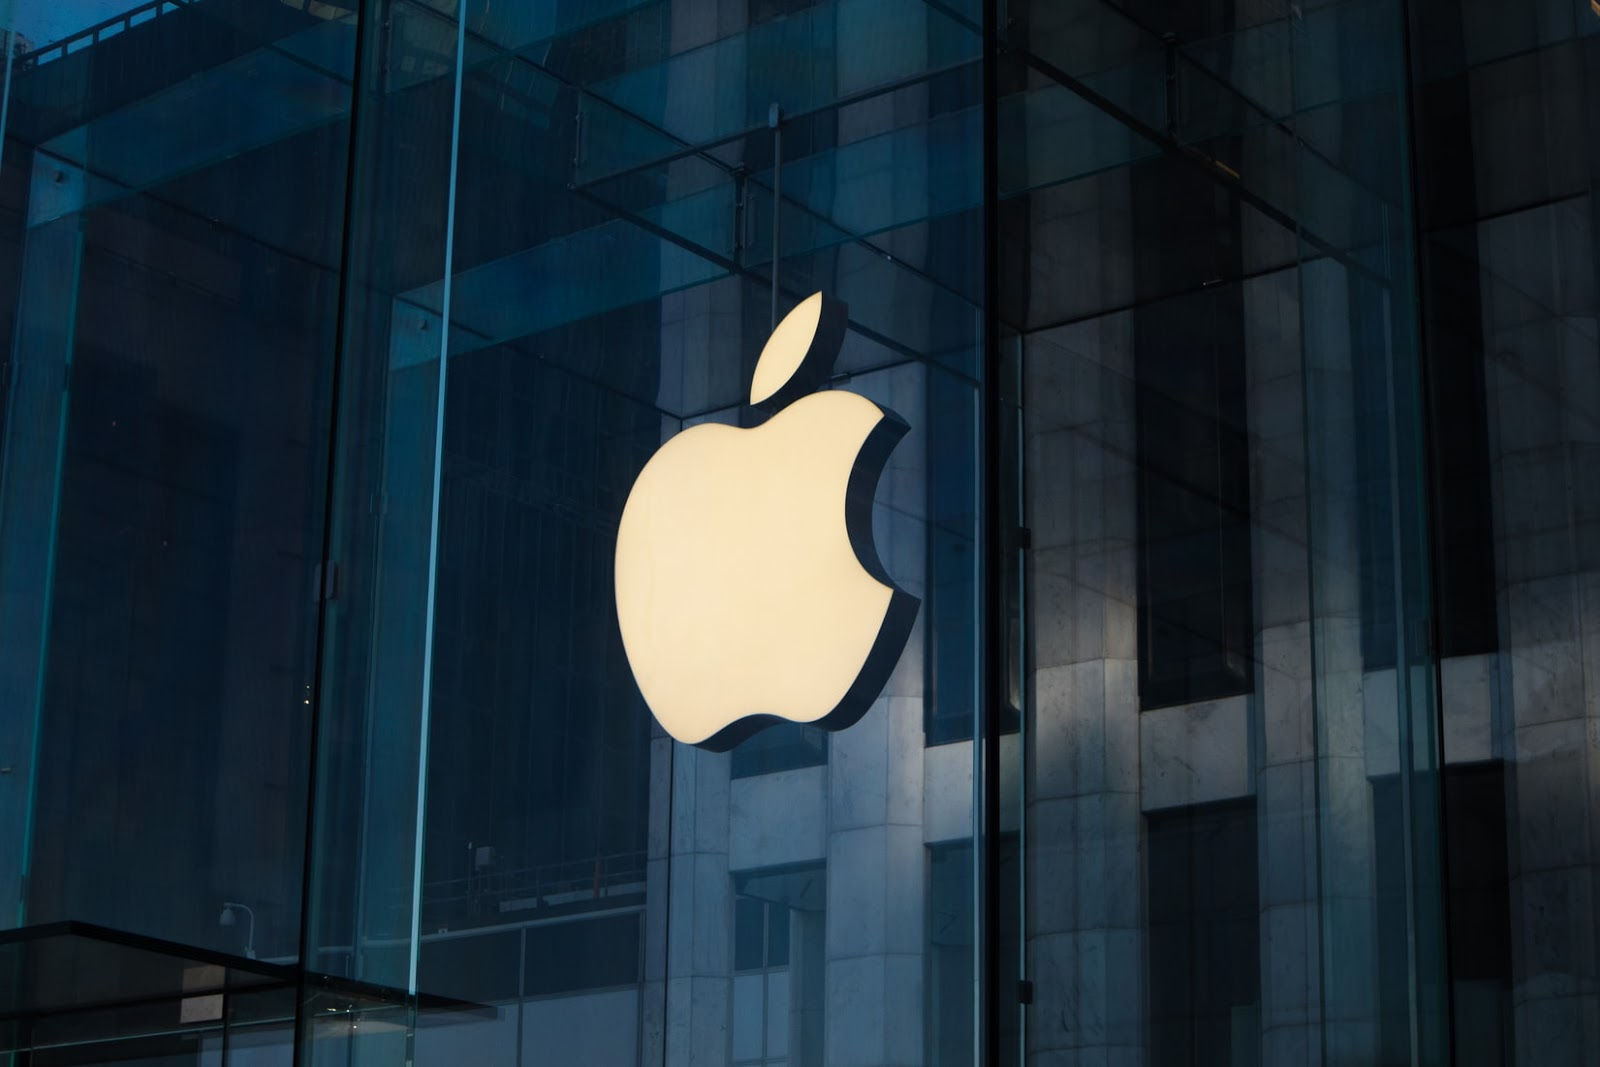 Apple to launch Apple Glasses, cameras with 8k resolution power and a new eye tracking technology with its AR headsets - Digital Information World